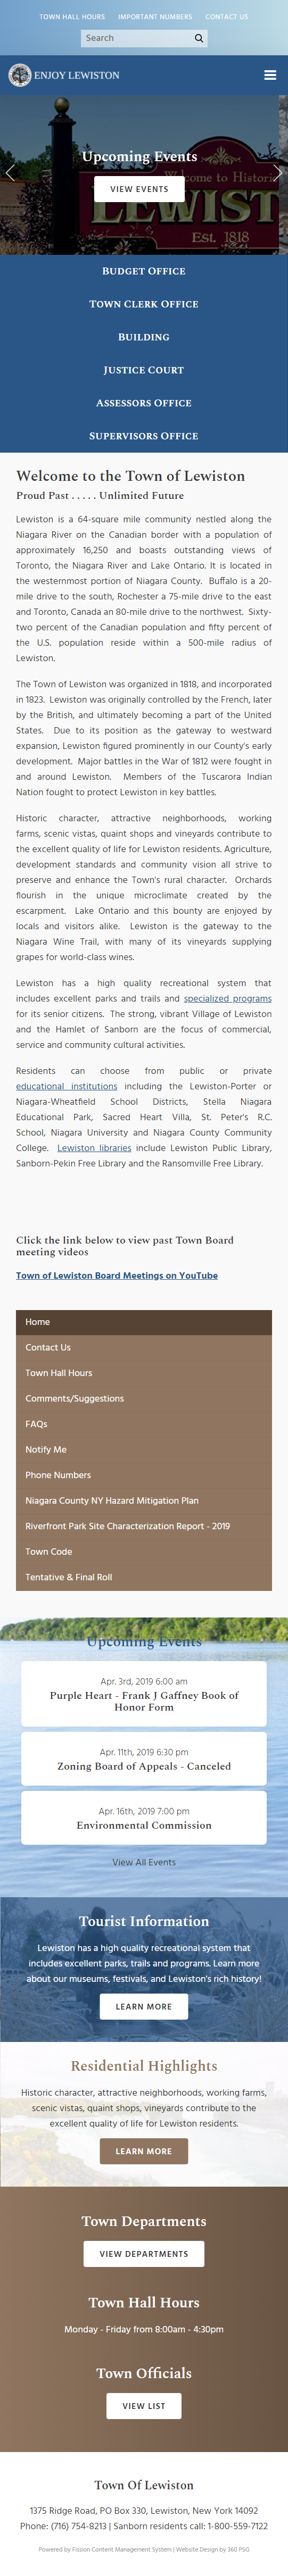 Town of Lewiston Mobile